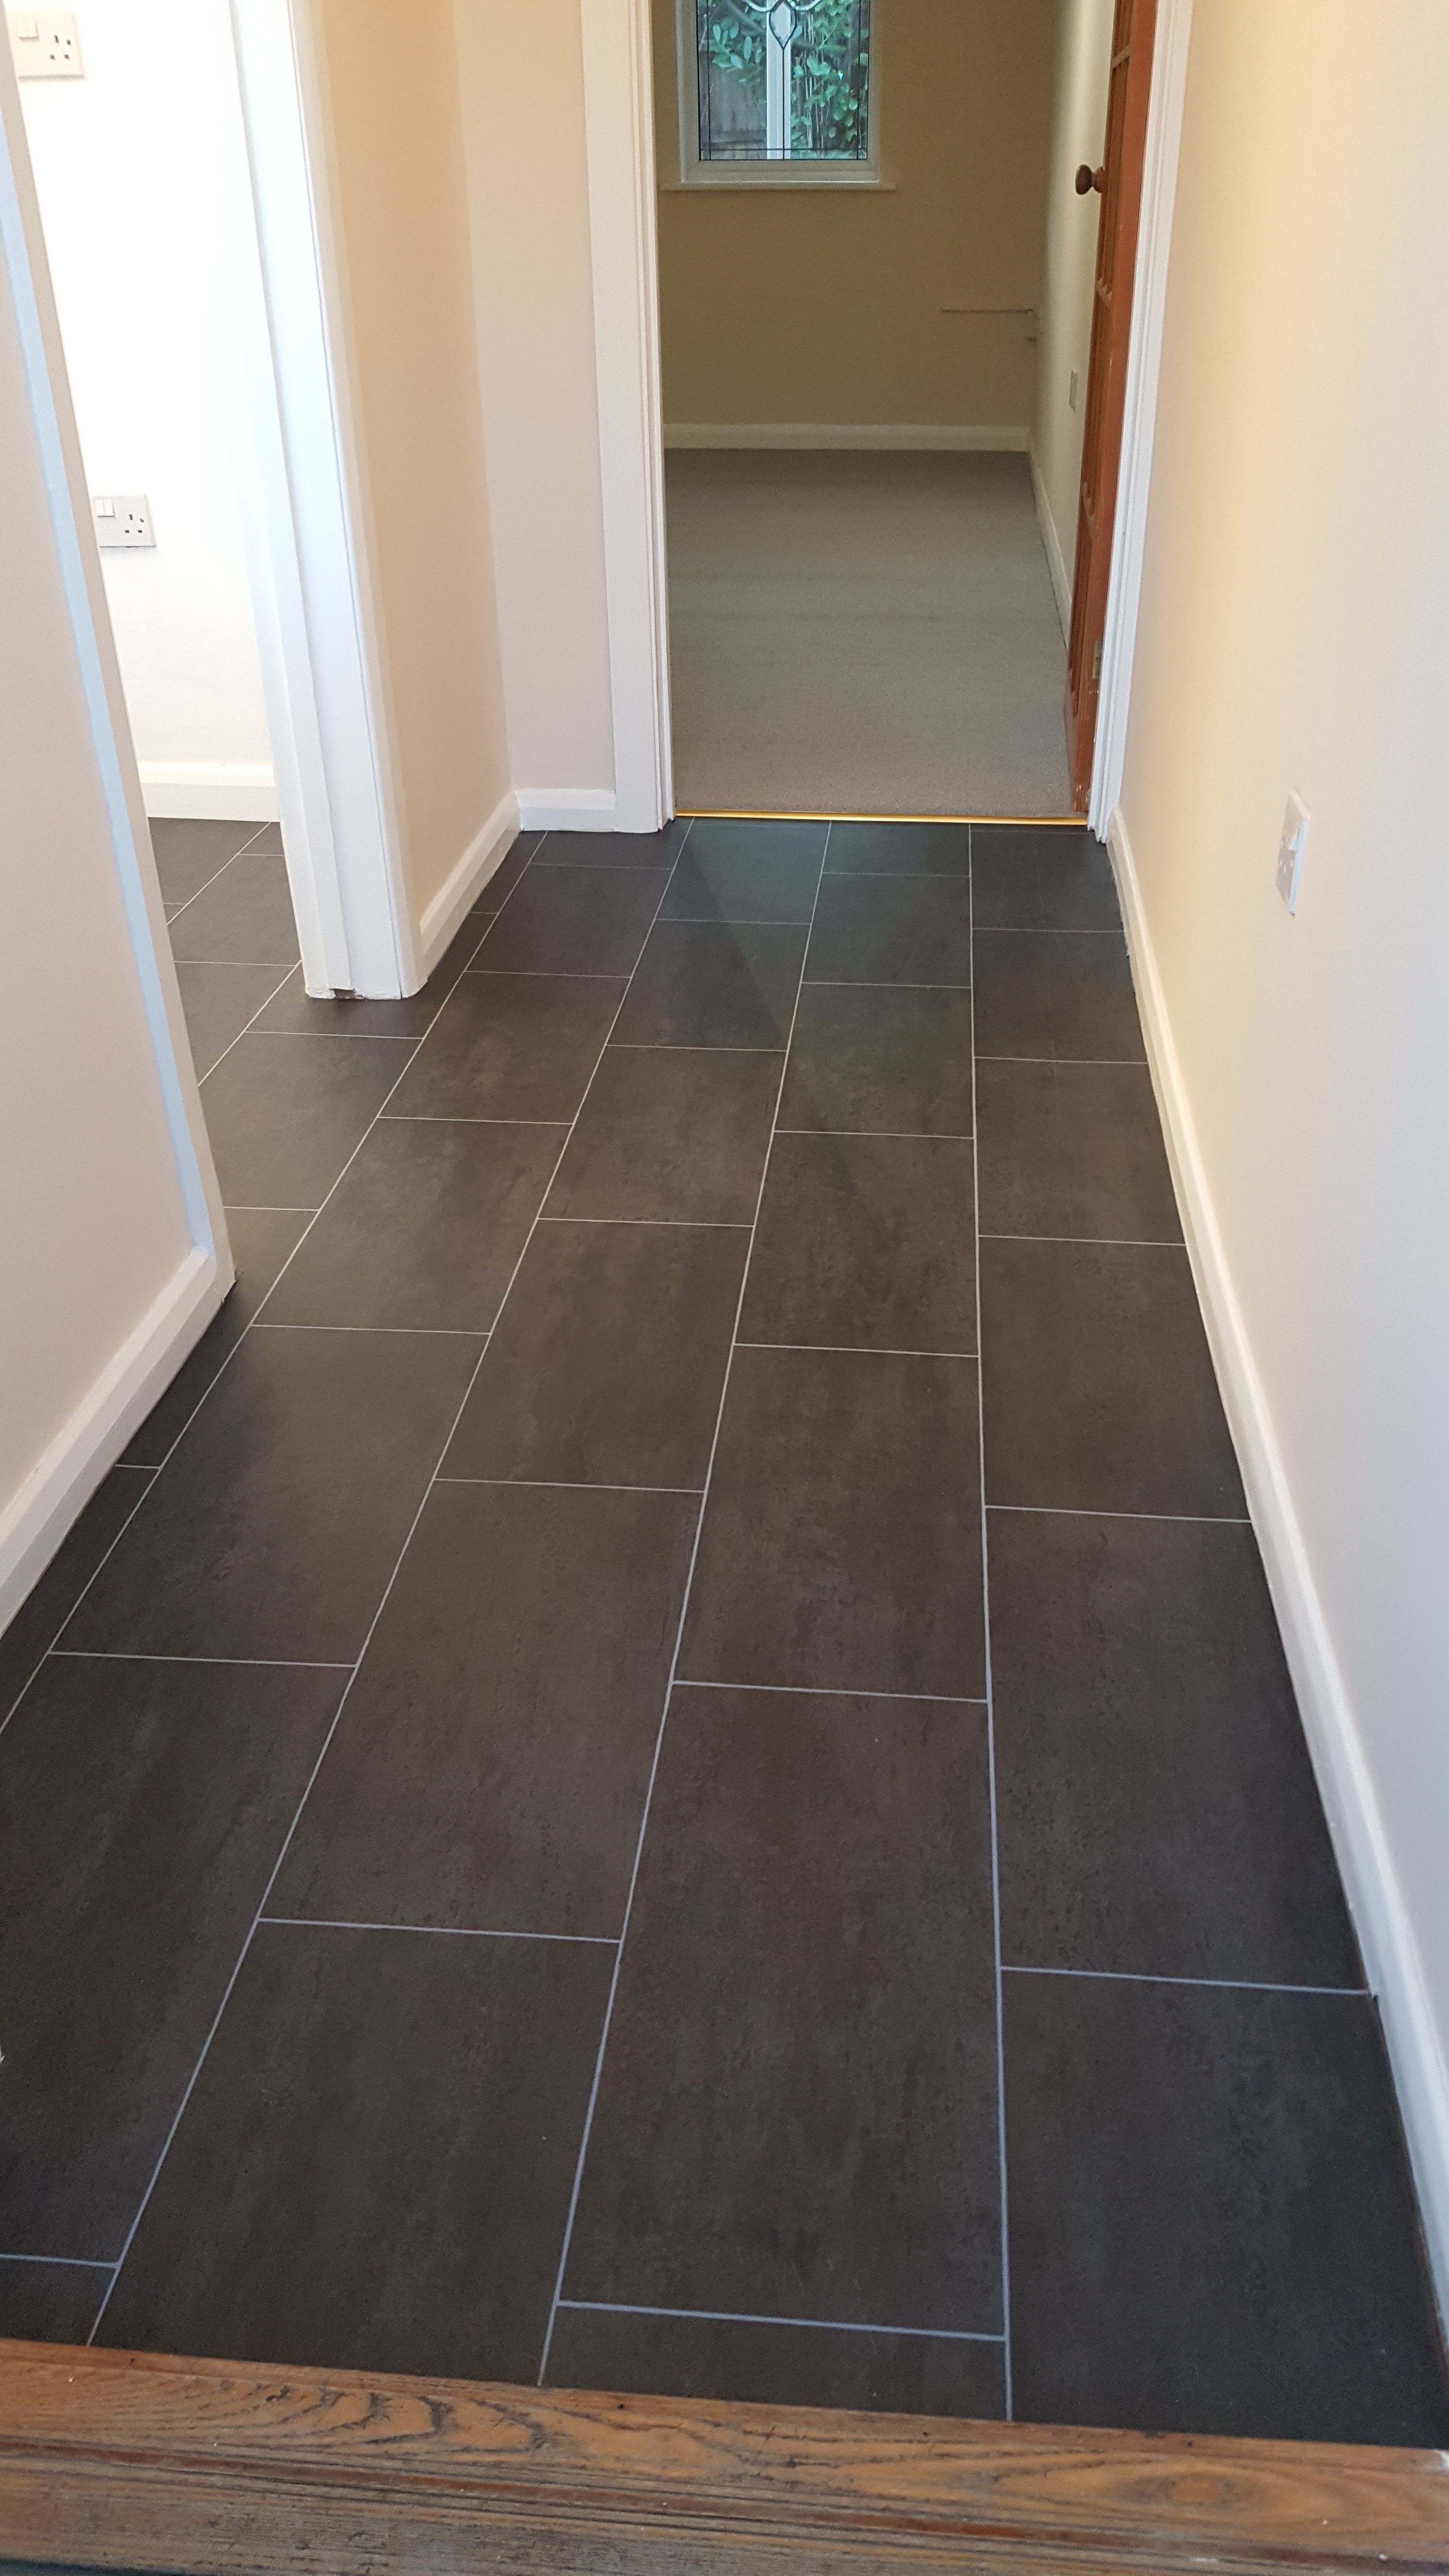 Slate Tile Vinyl Flooring Fitted In One Piece To Hallway And Kitchen Luxury Vinyl Tile Flooring Vinyl Flooring Bathroom Vinyl Flooring